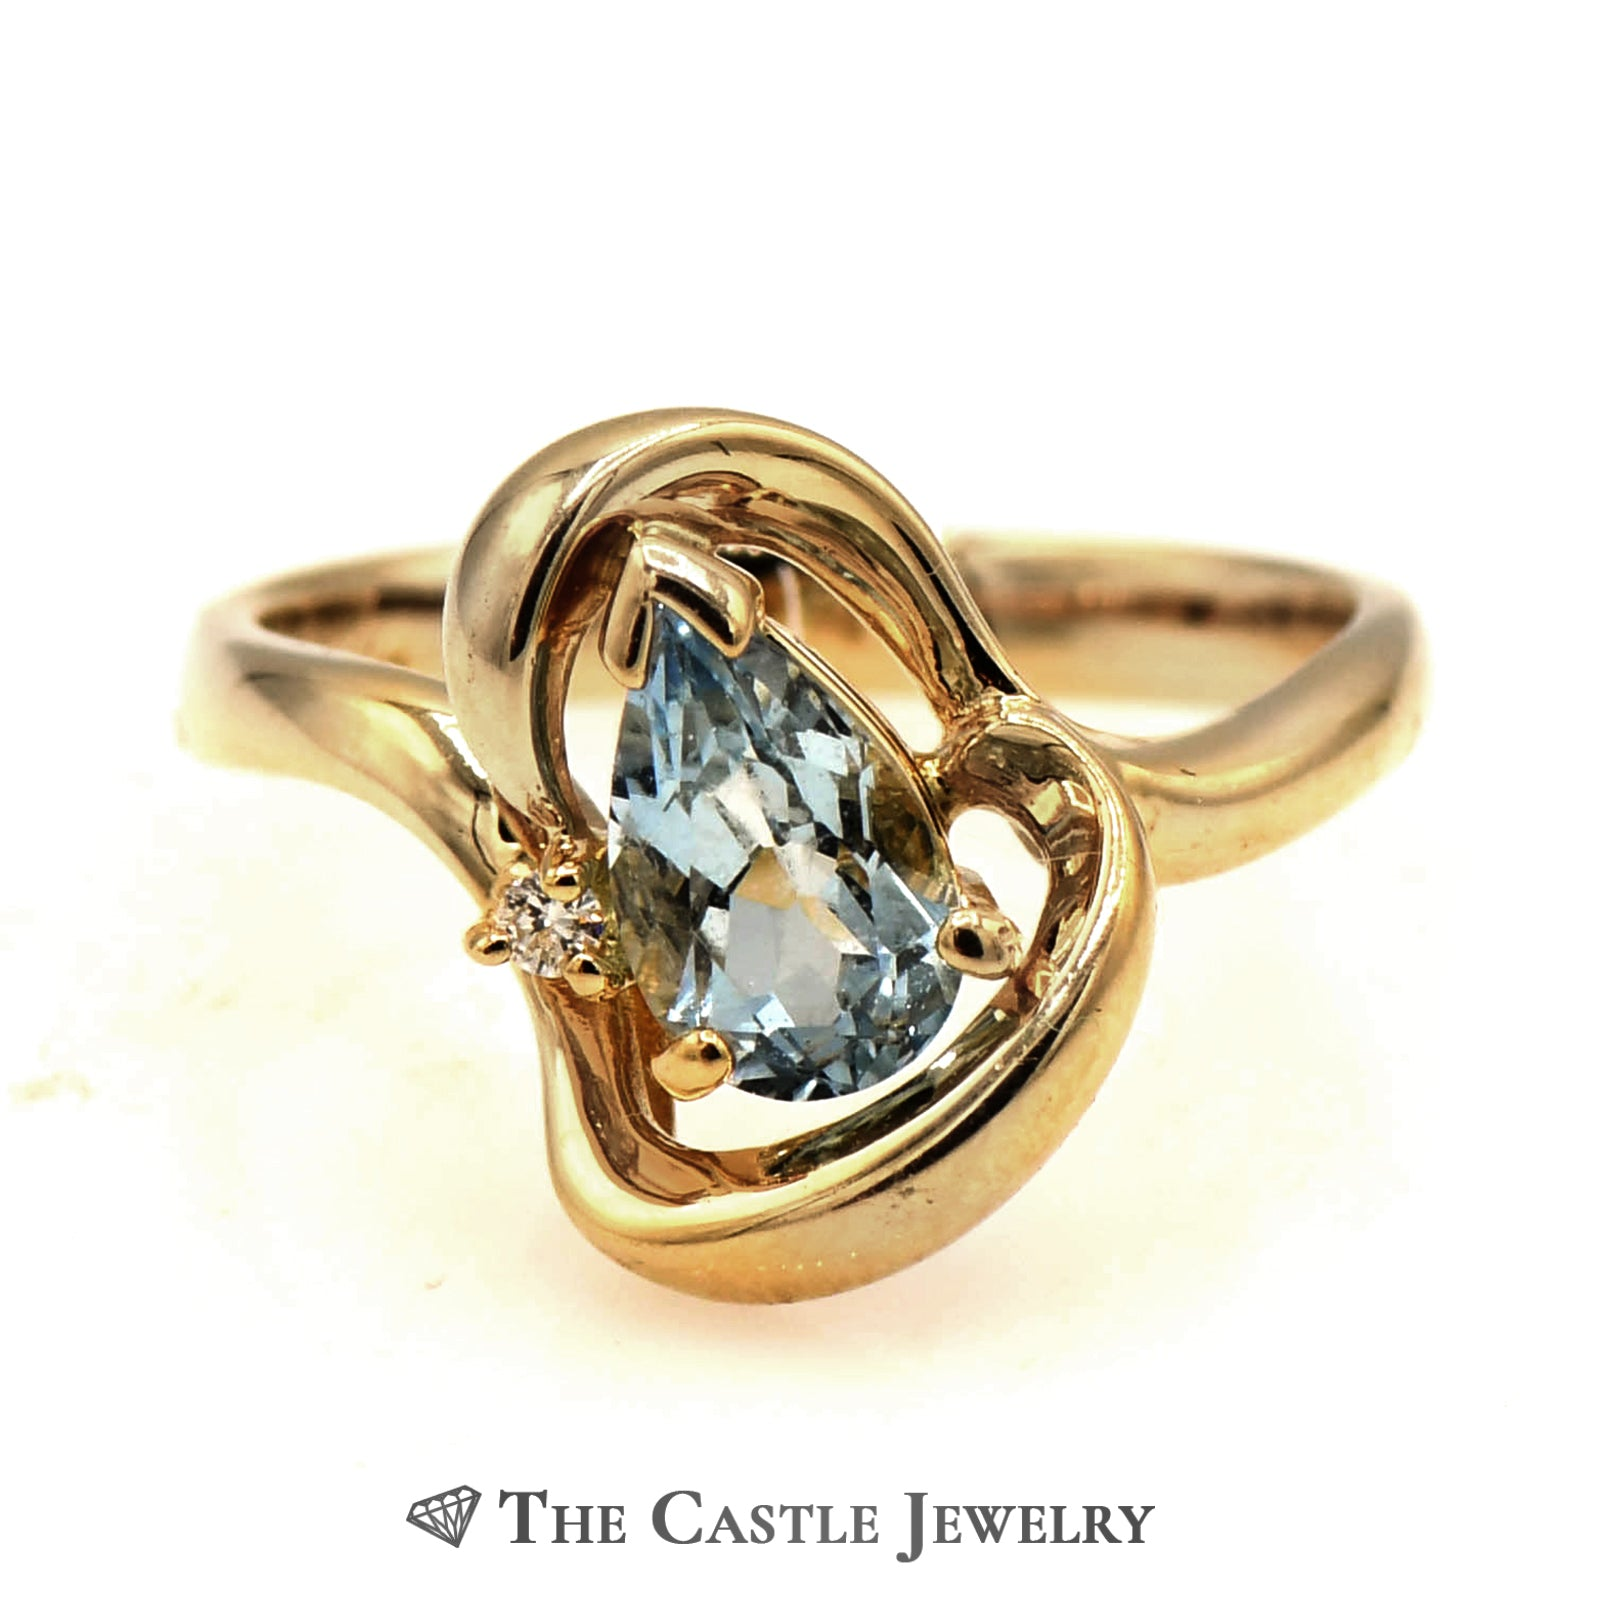 Ladies Free Form Diamond And Blue Topaz Ring In 14KT YG